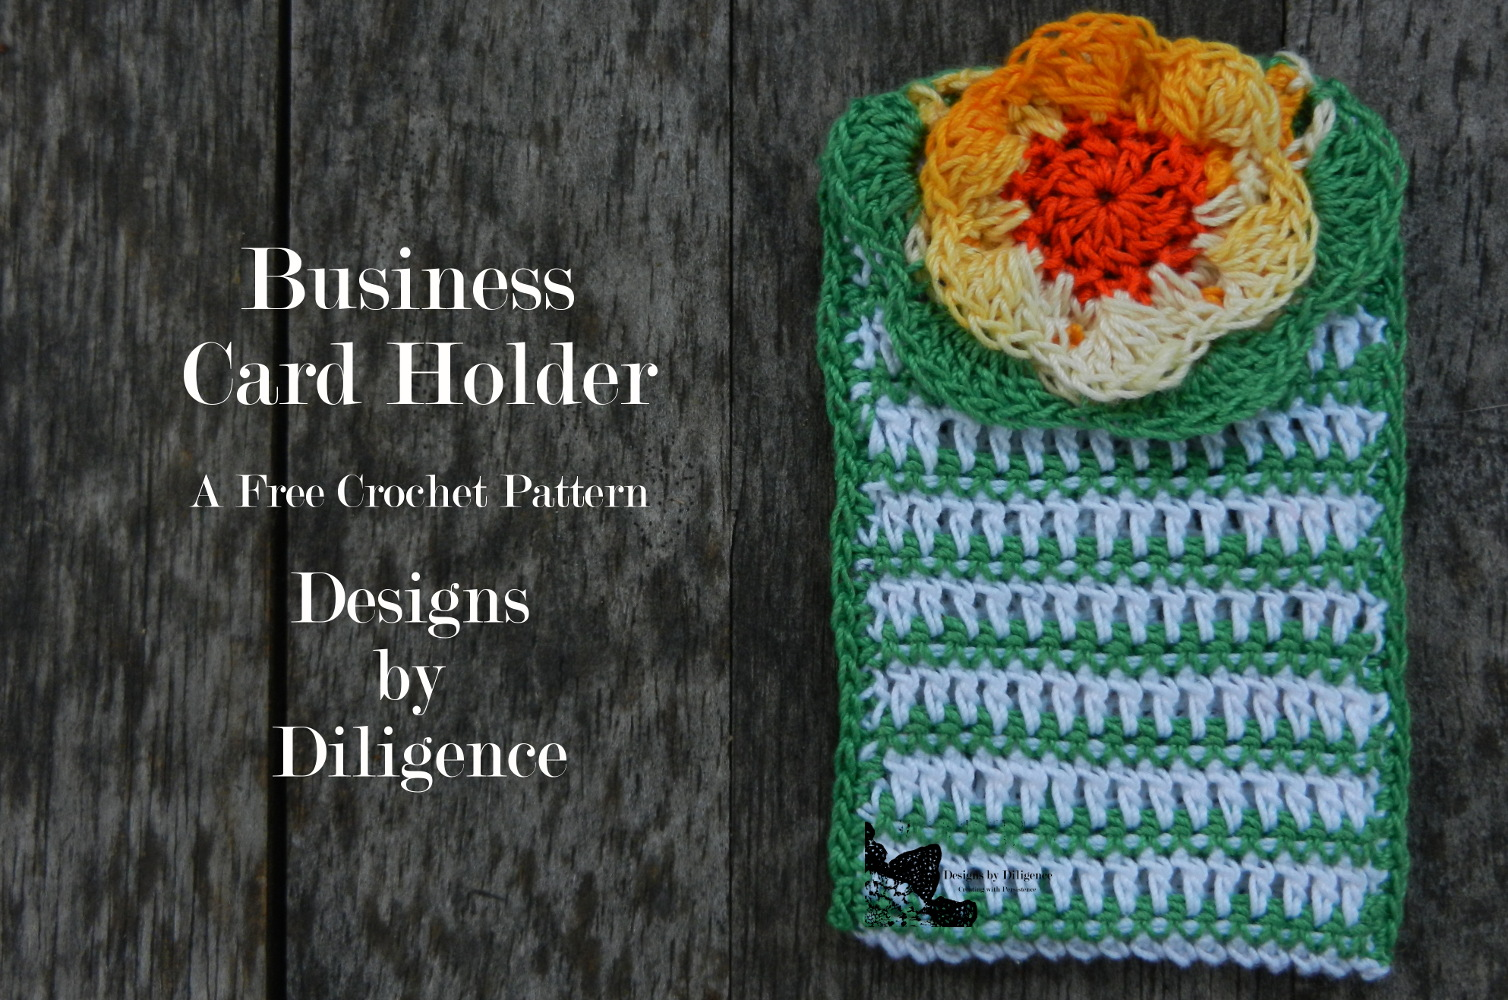 Designs by Diligence: business card holder